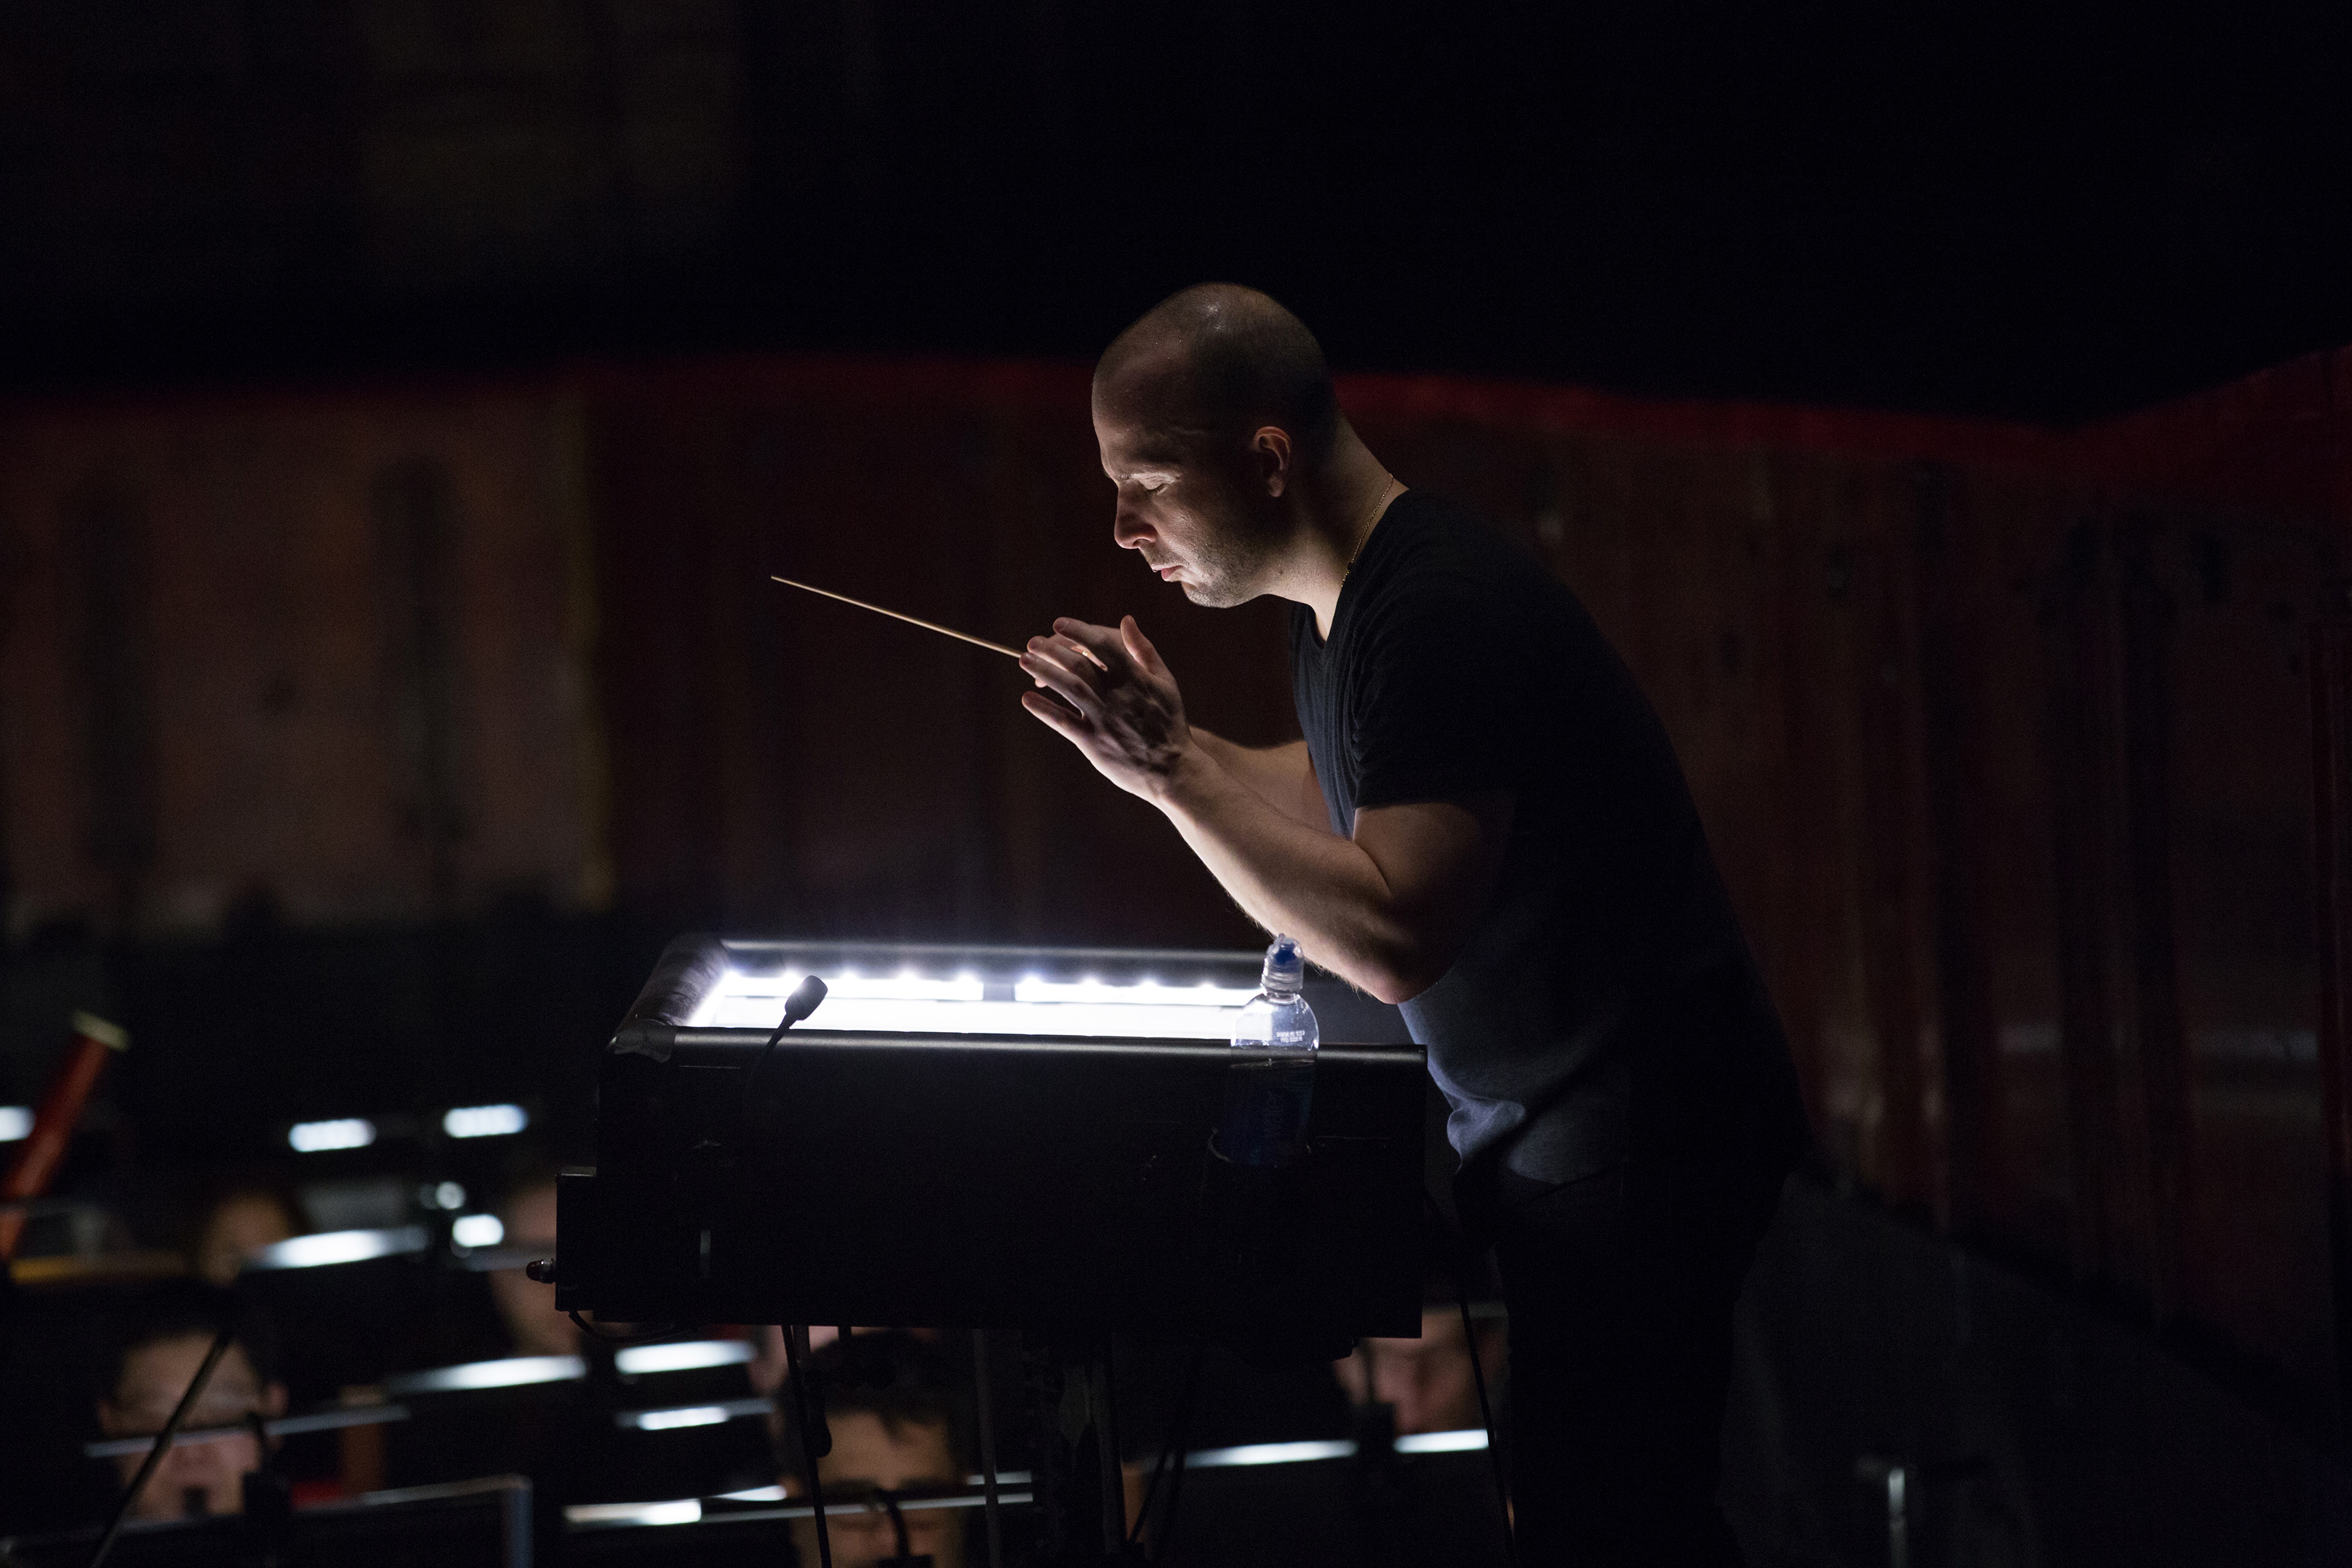 Yannick Nézet-Séguin conducts during the Elektra orchestra rehearsal at the Metropolitan Opera in New York on February 23, 2018.